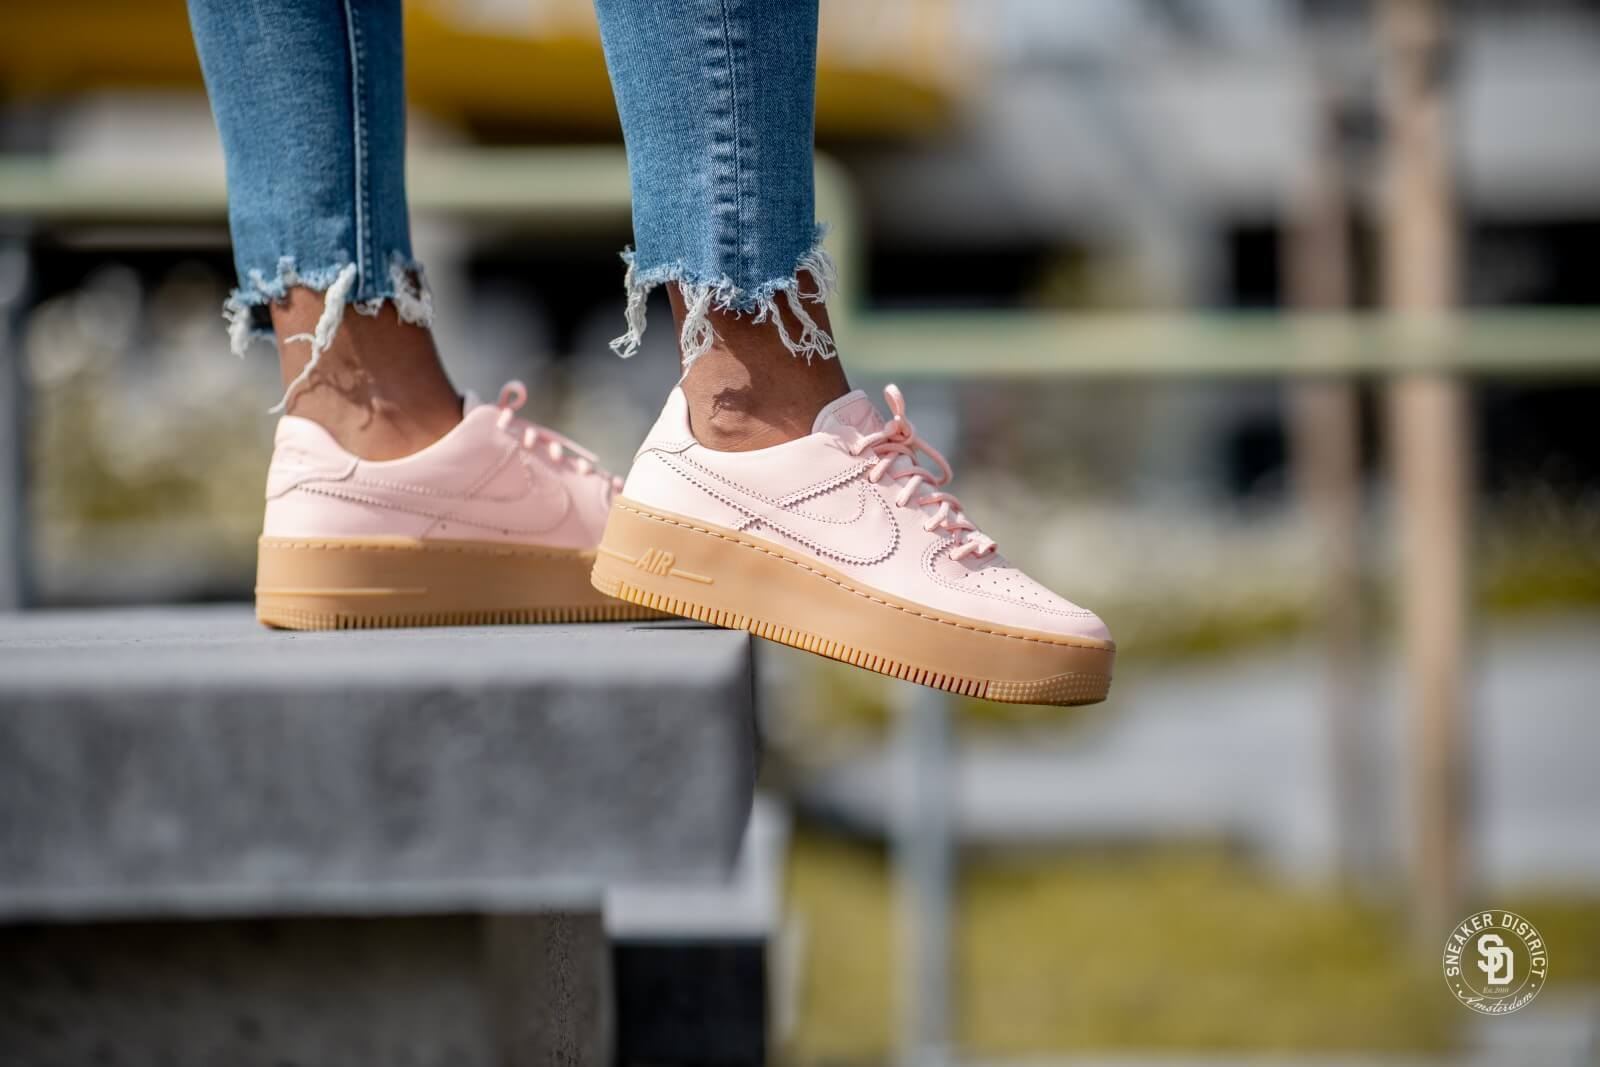 Nike Green Women's Air Force 1 Sage Low Lx Features A